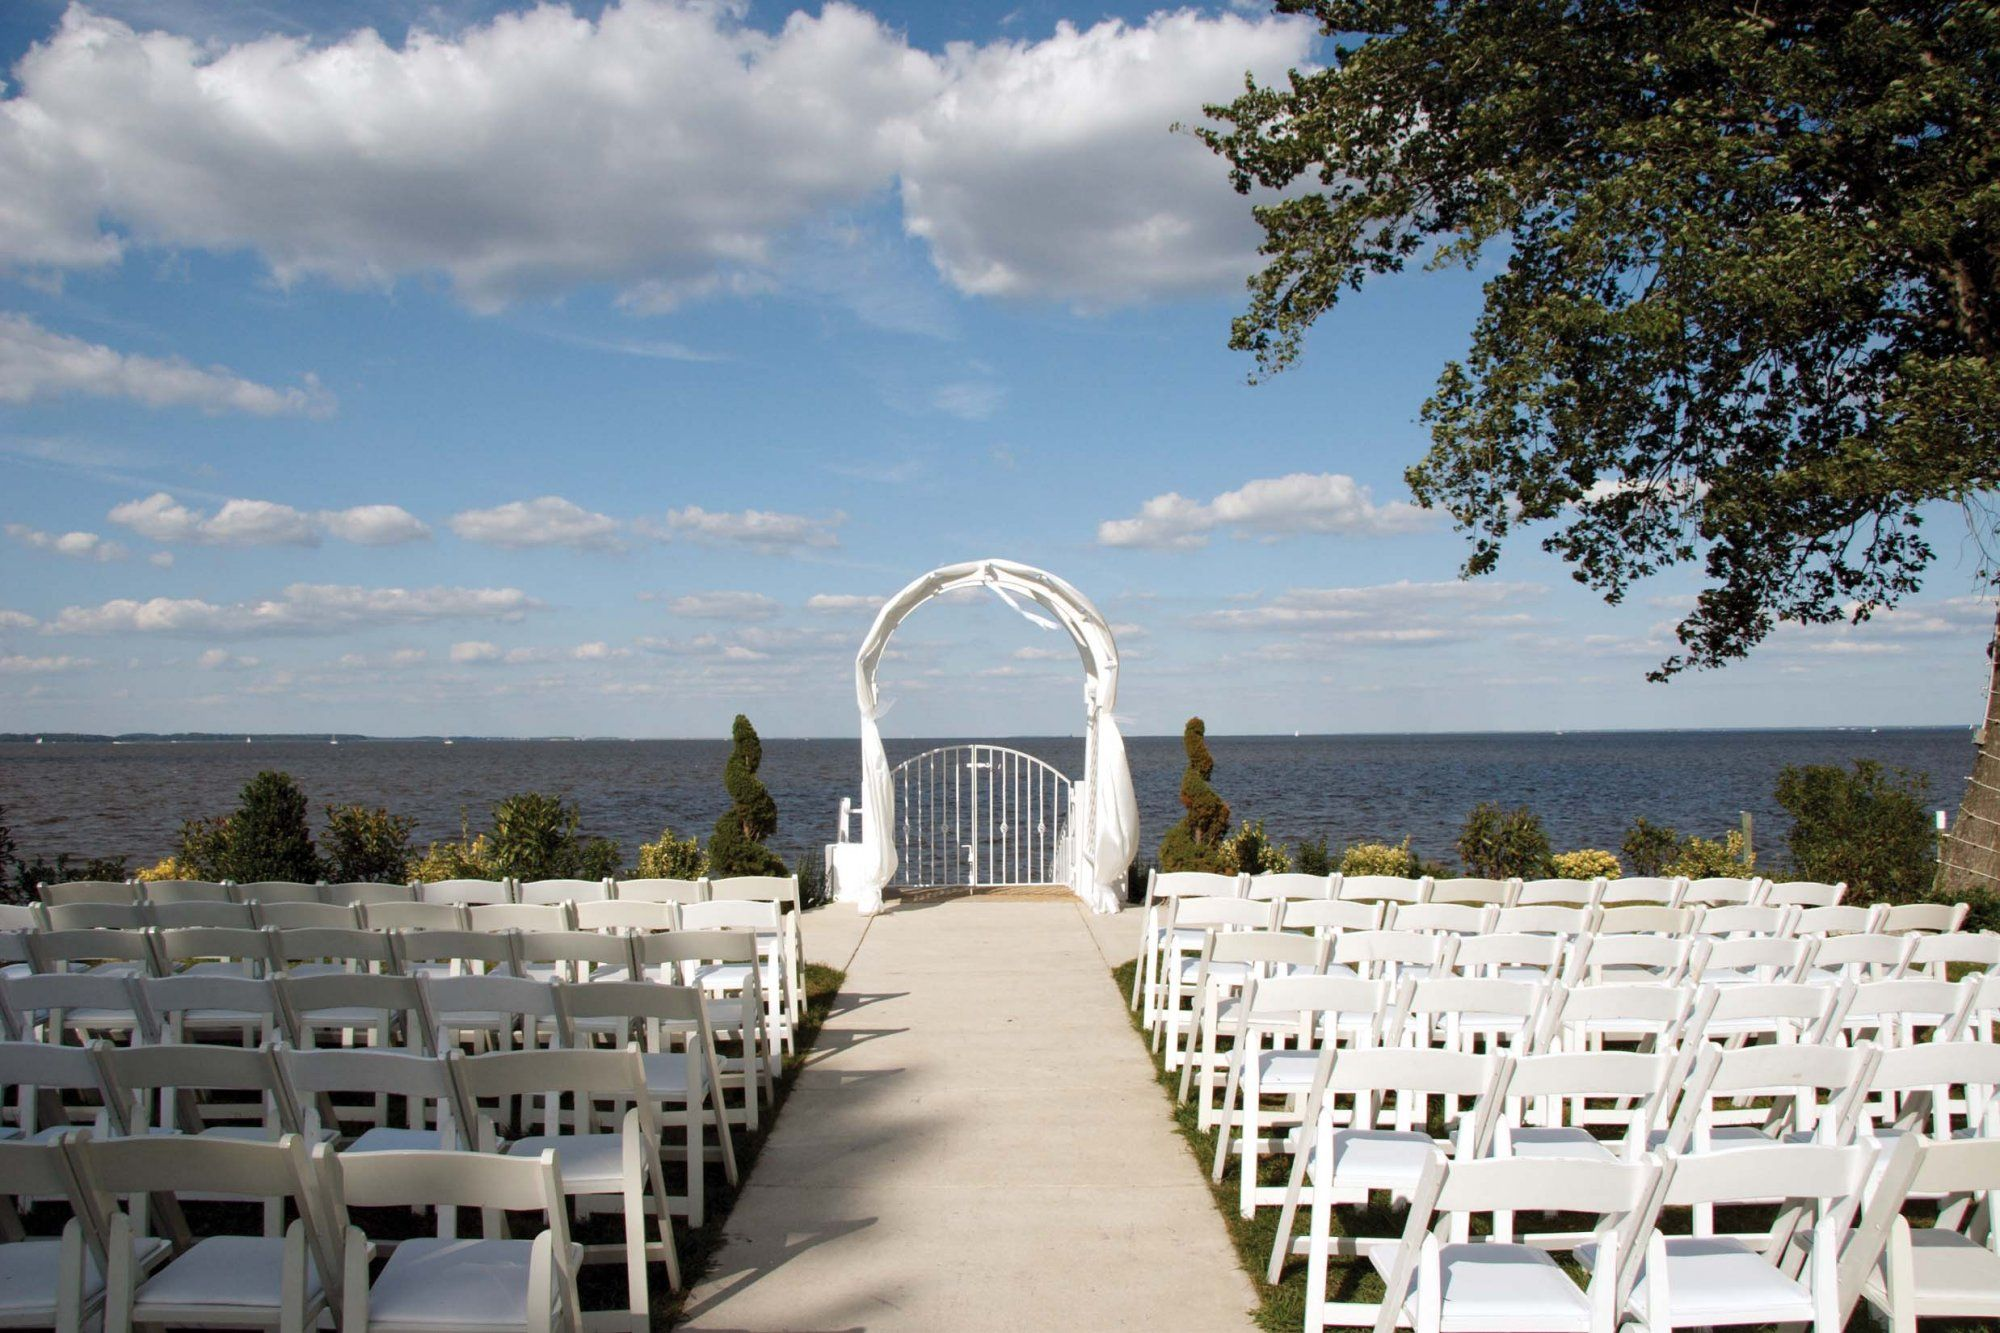 Waterfront Wedding Venue In Maryland Celebrations At The Bay Waterfront Wedding Wedding Venues Wedding Expenses